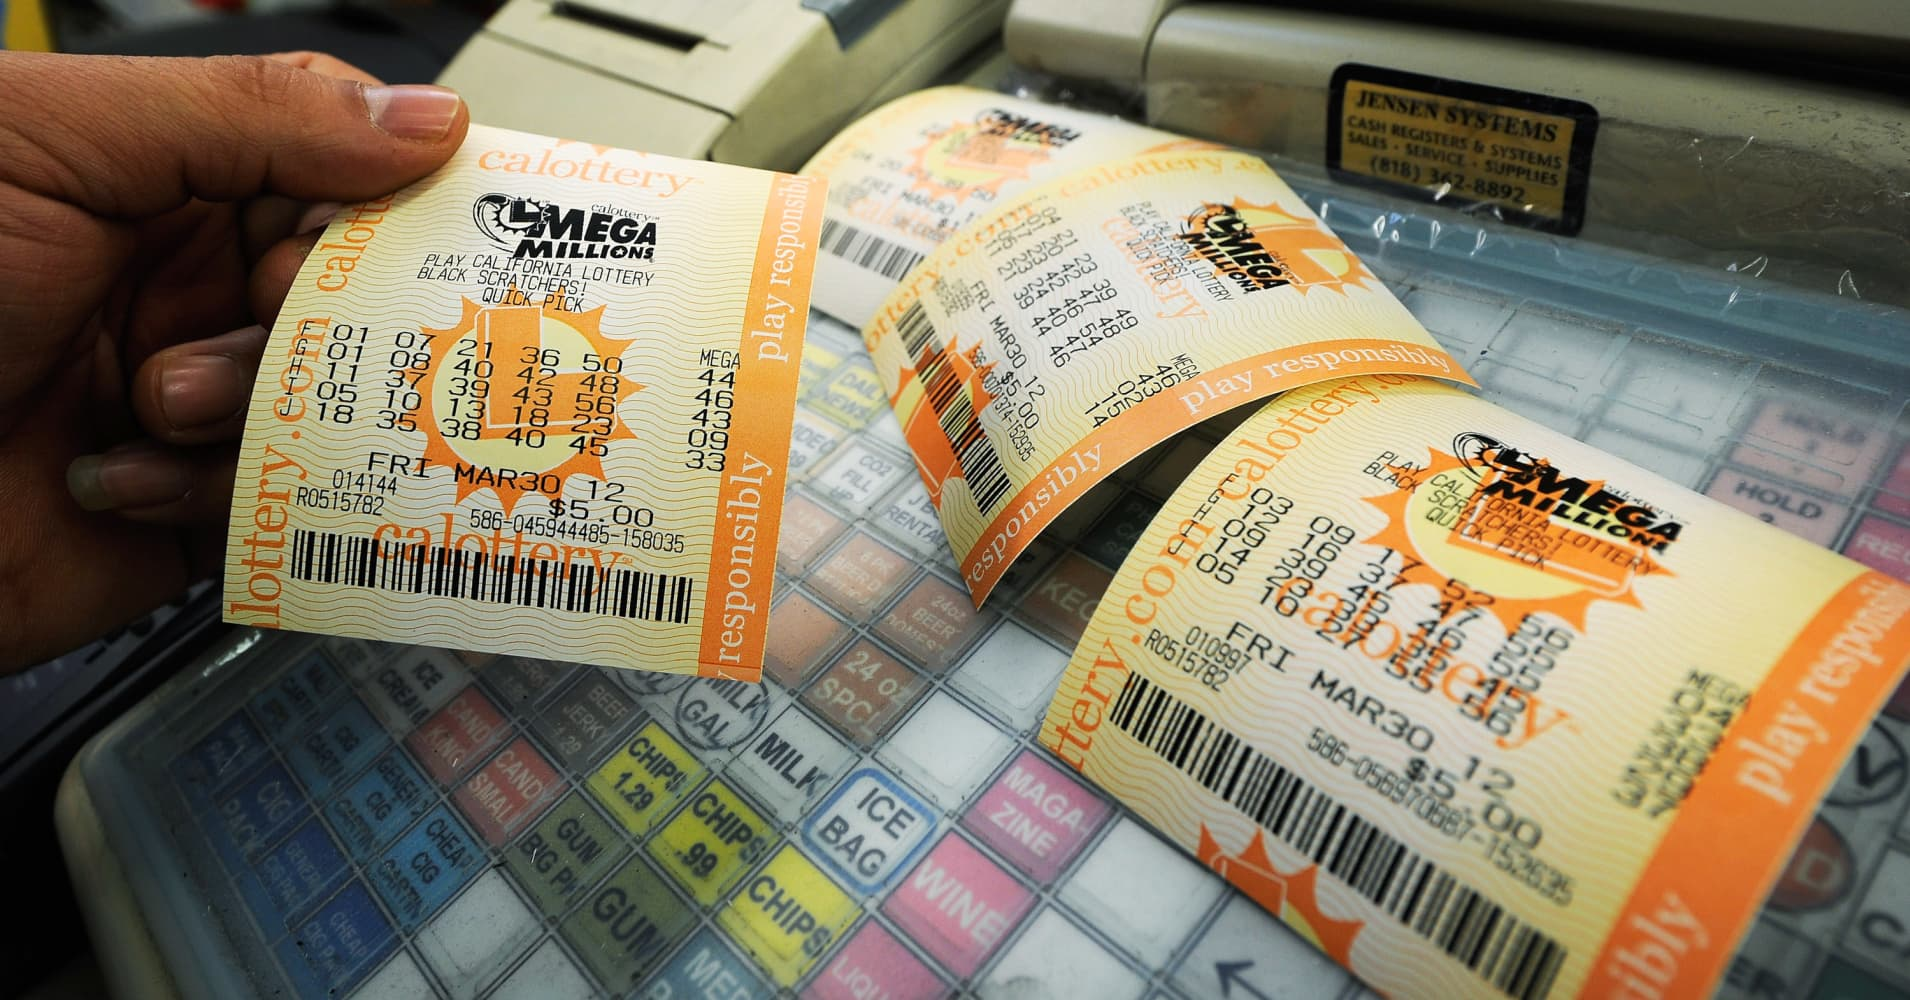 The winning numbers for Tuesday night's $454 million Mega Millions lottery were 29, 46, 53, 64, 73 and 10.